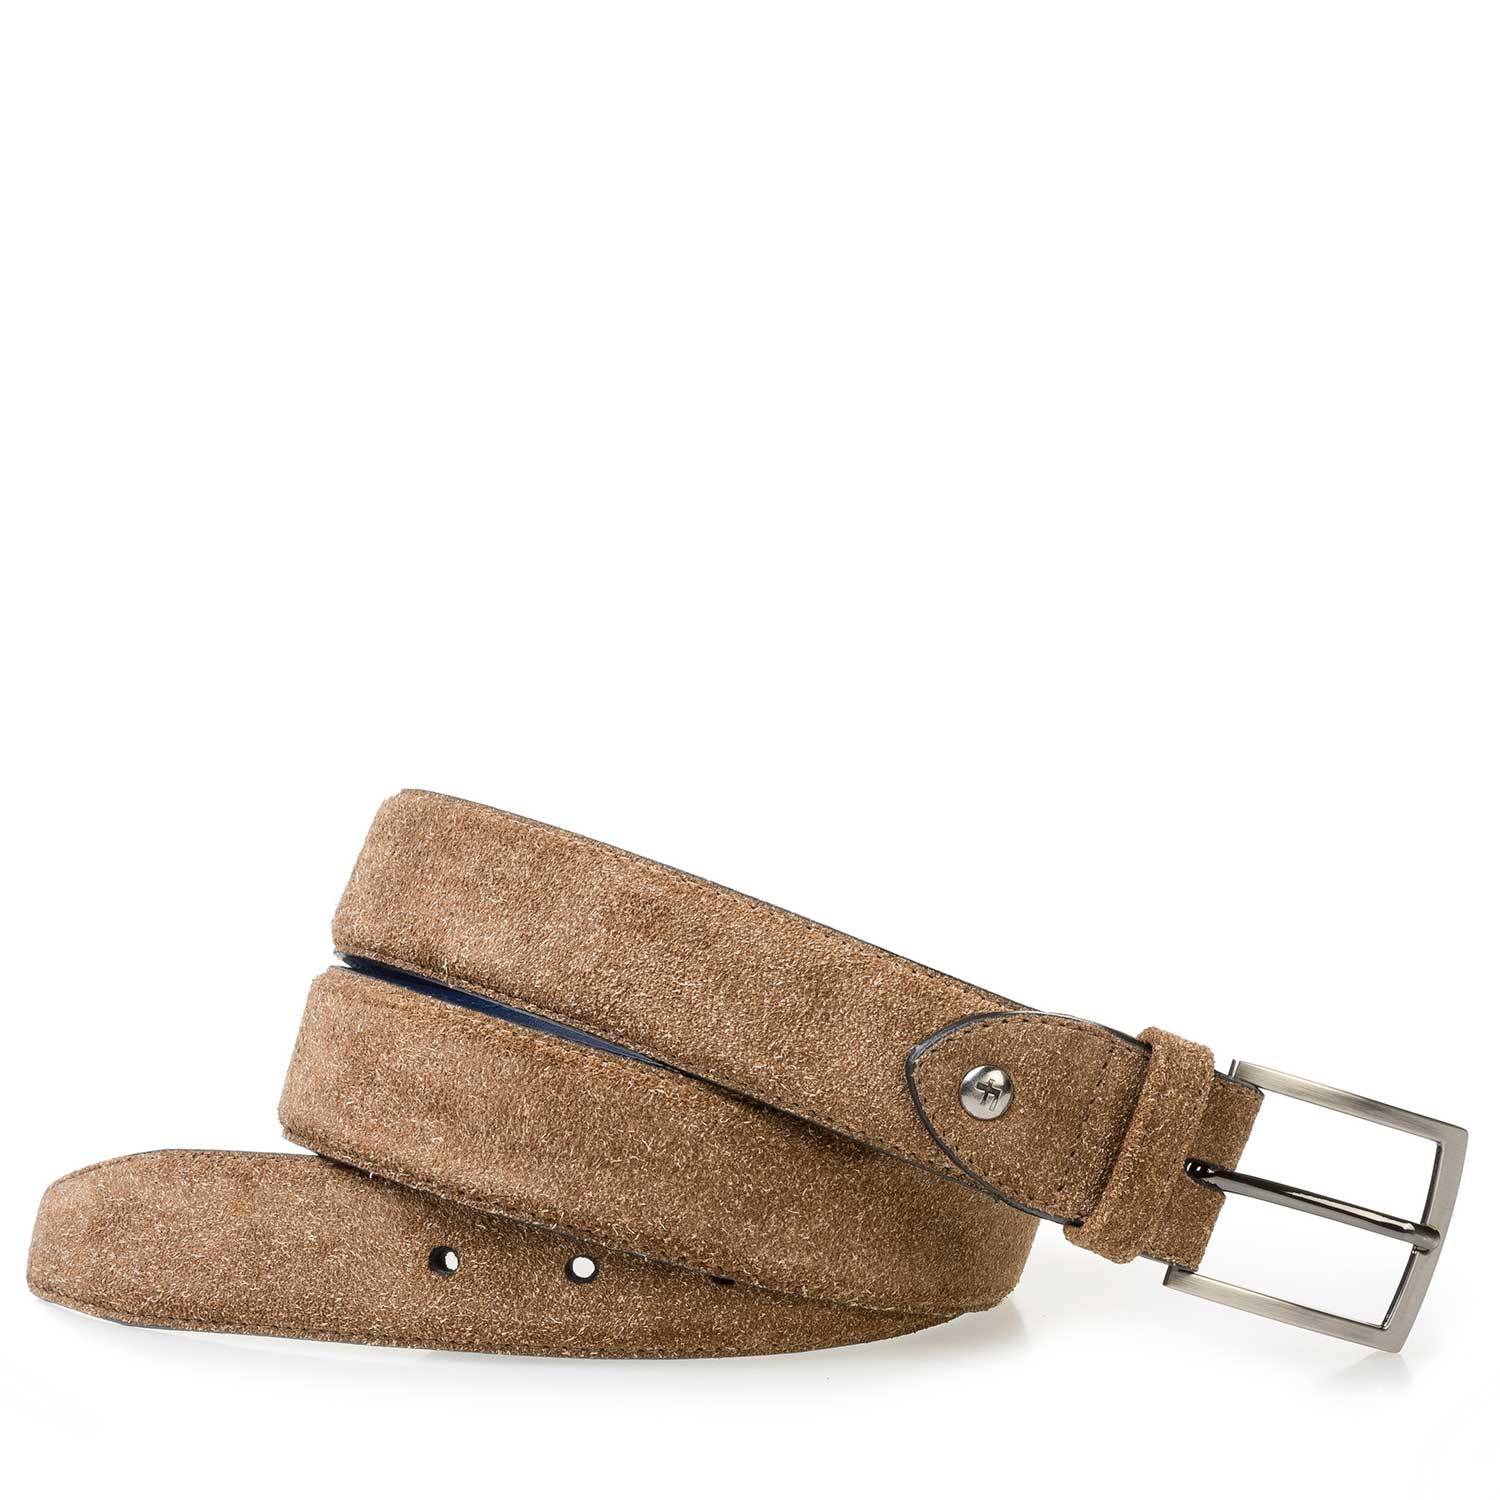 75200/02 - Brown rough suede leather belt